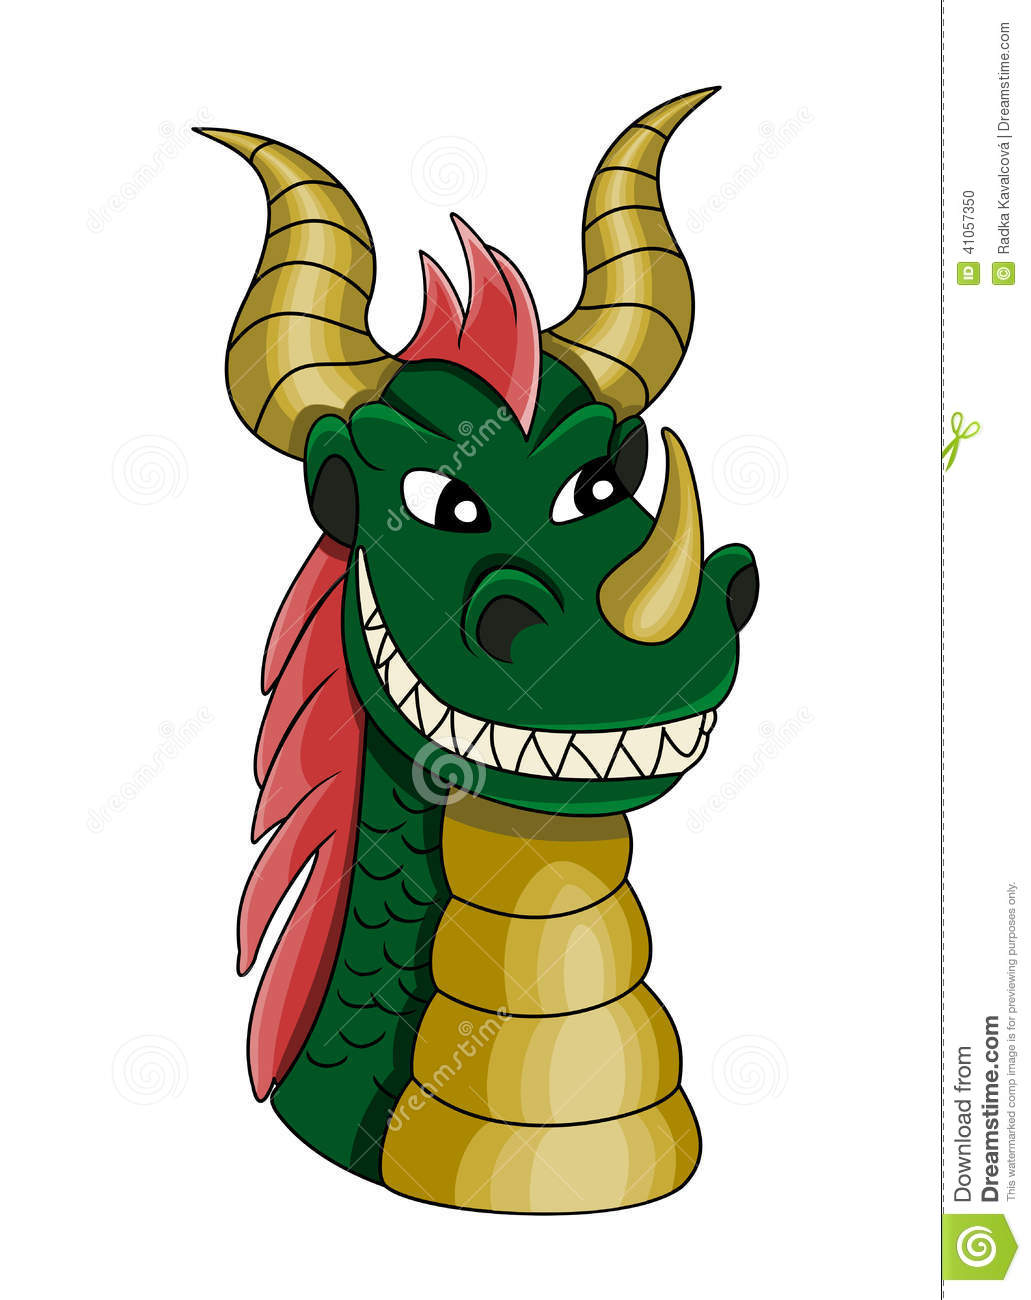 Dragon With Red Spiked Hair And Horns Fantasy Creature Design